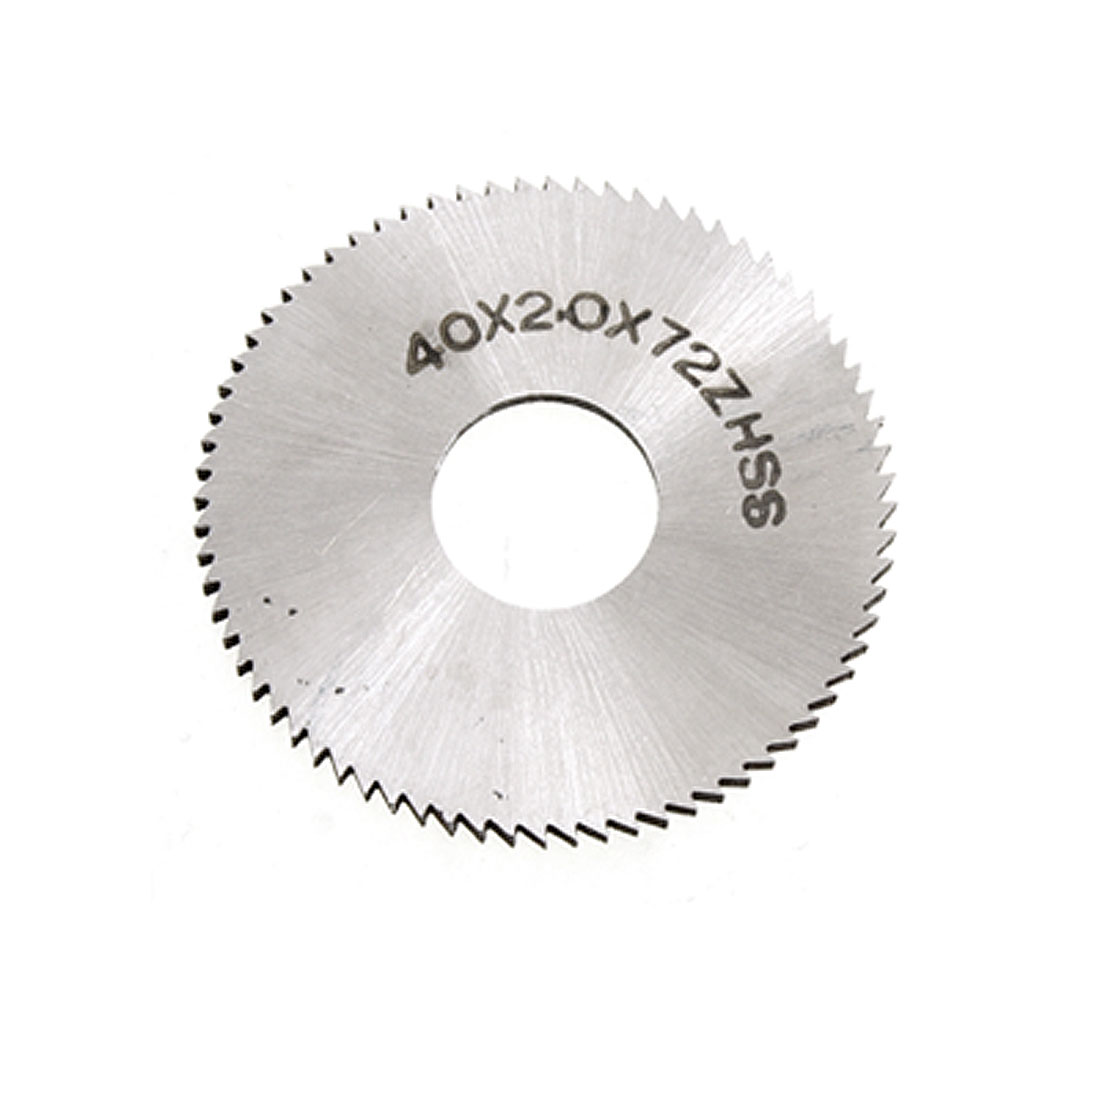 40mm Diameter 2mm Thickness High Speed Steel Milling Cutter Saw